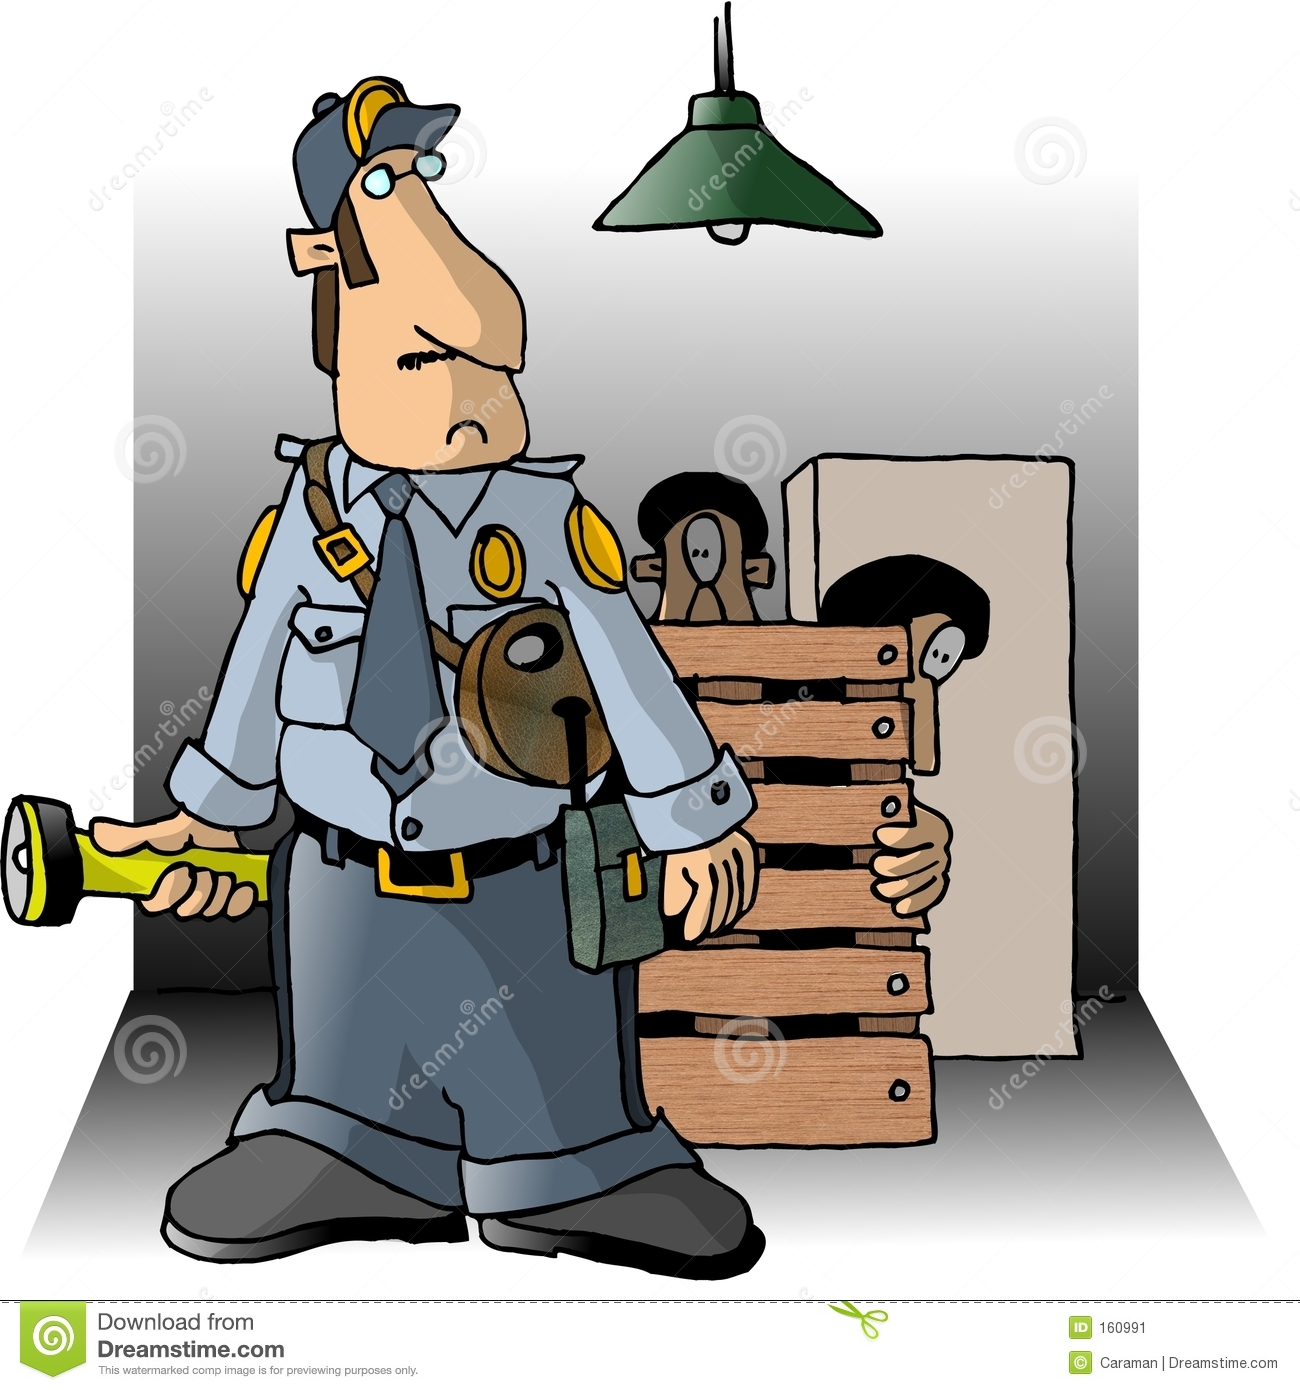 watchman clipart - photo #4